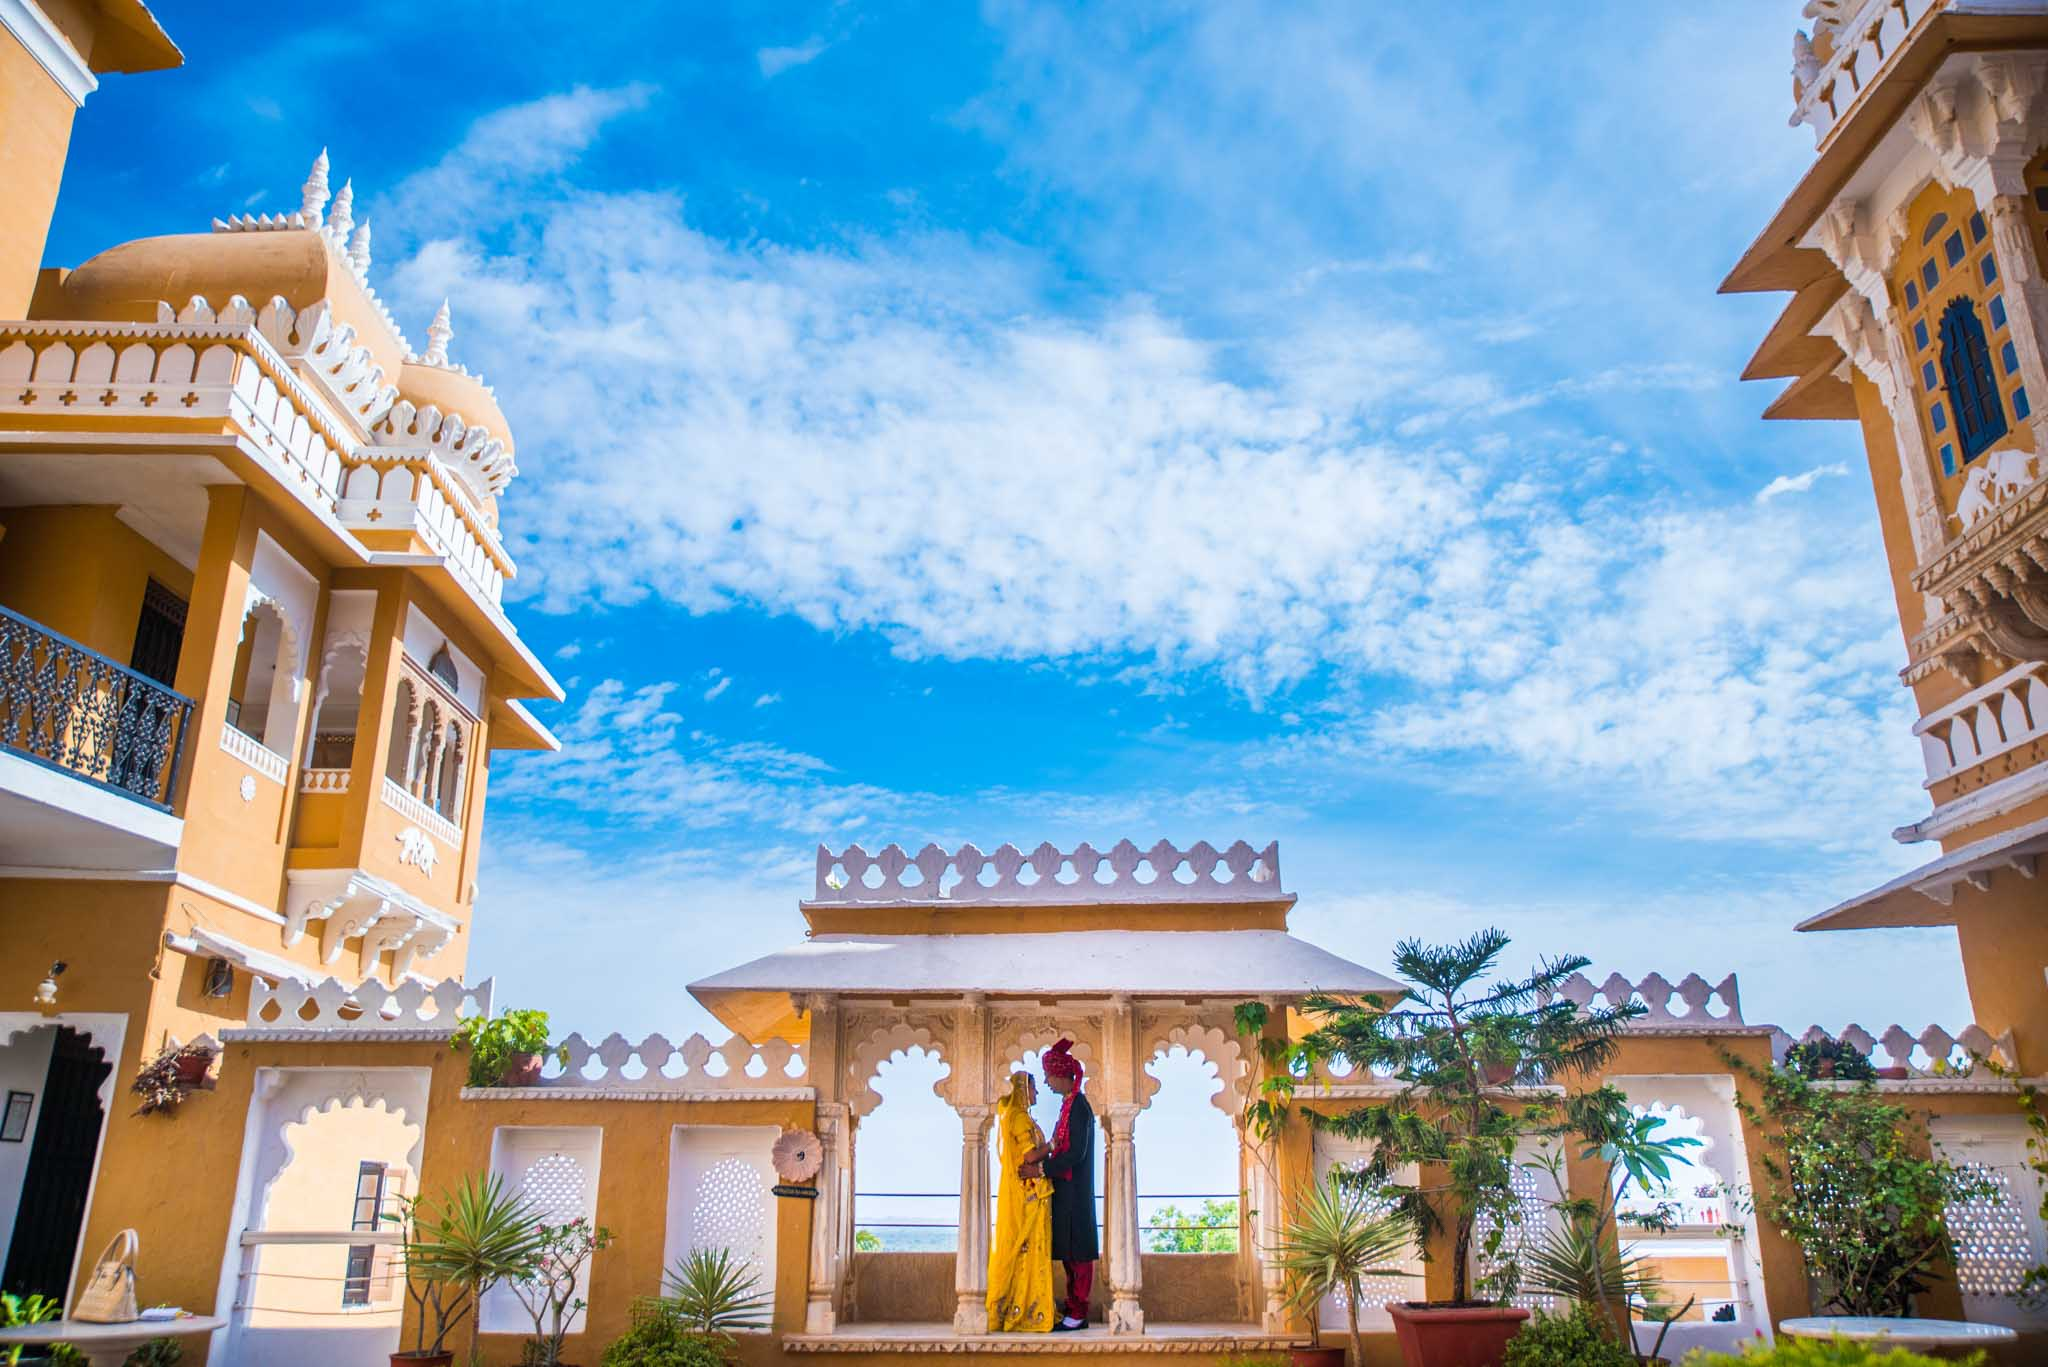 udaipur-palace-destination-wedding-deogarh-mahal-devgarh-25